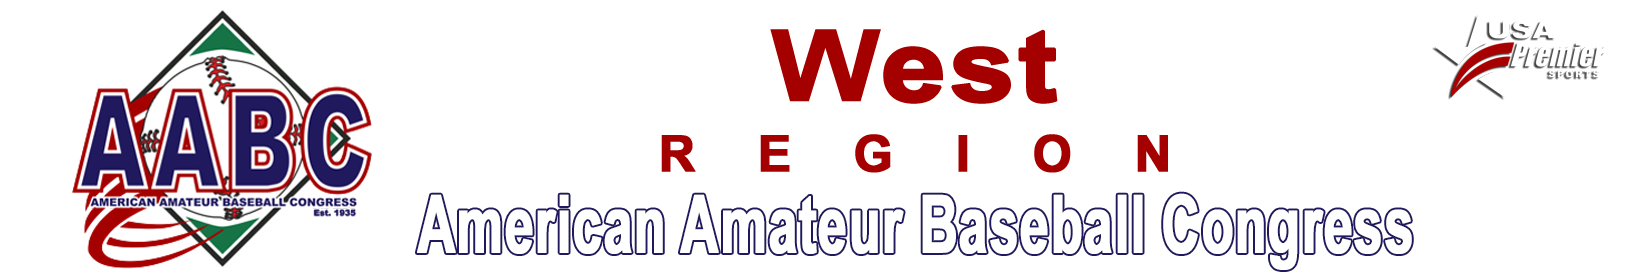 AABC West